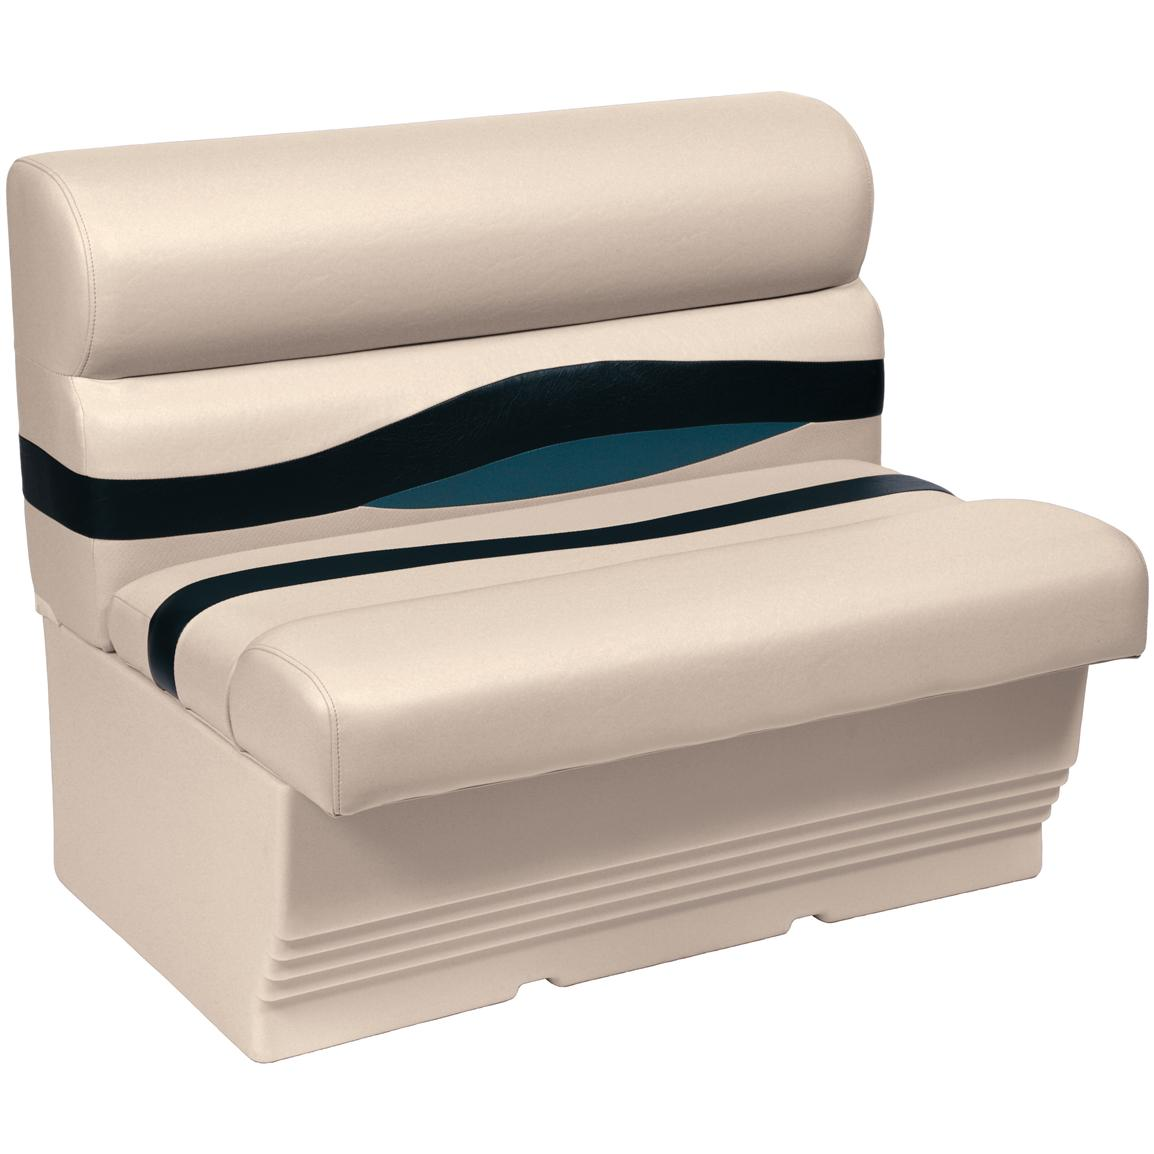 Wise® Premier 1100 Series 36 inch Pontoon Bench Seat, Color A